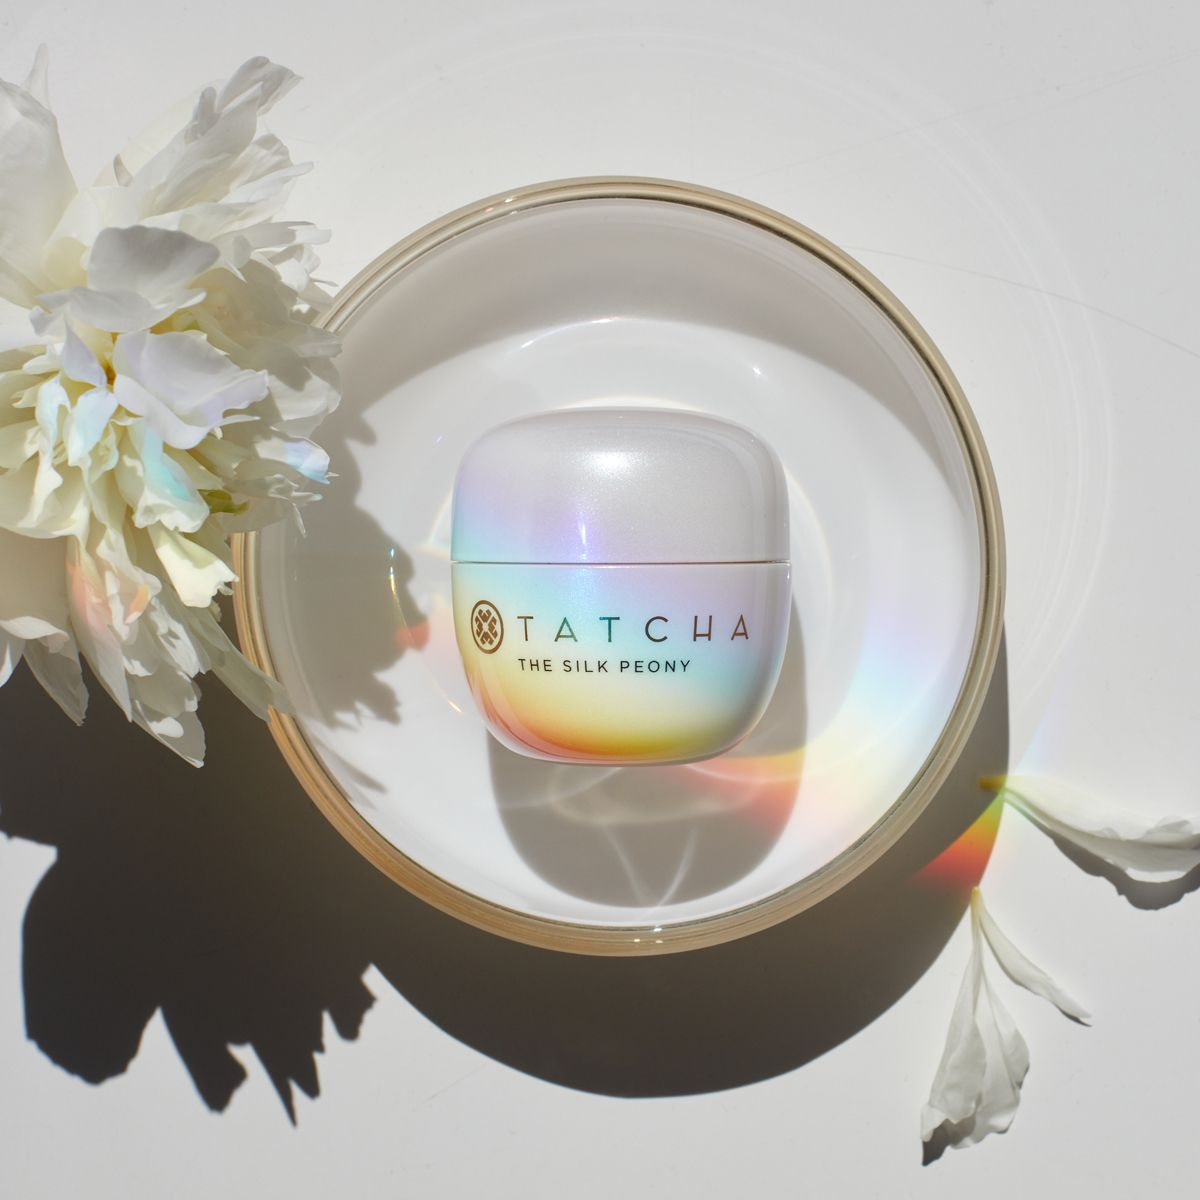 An Anti-aging Eye Cream That Melts To Release A Double